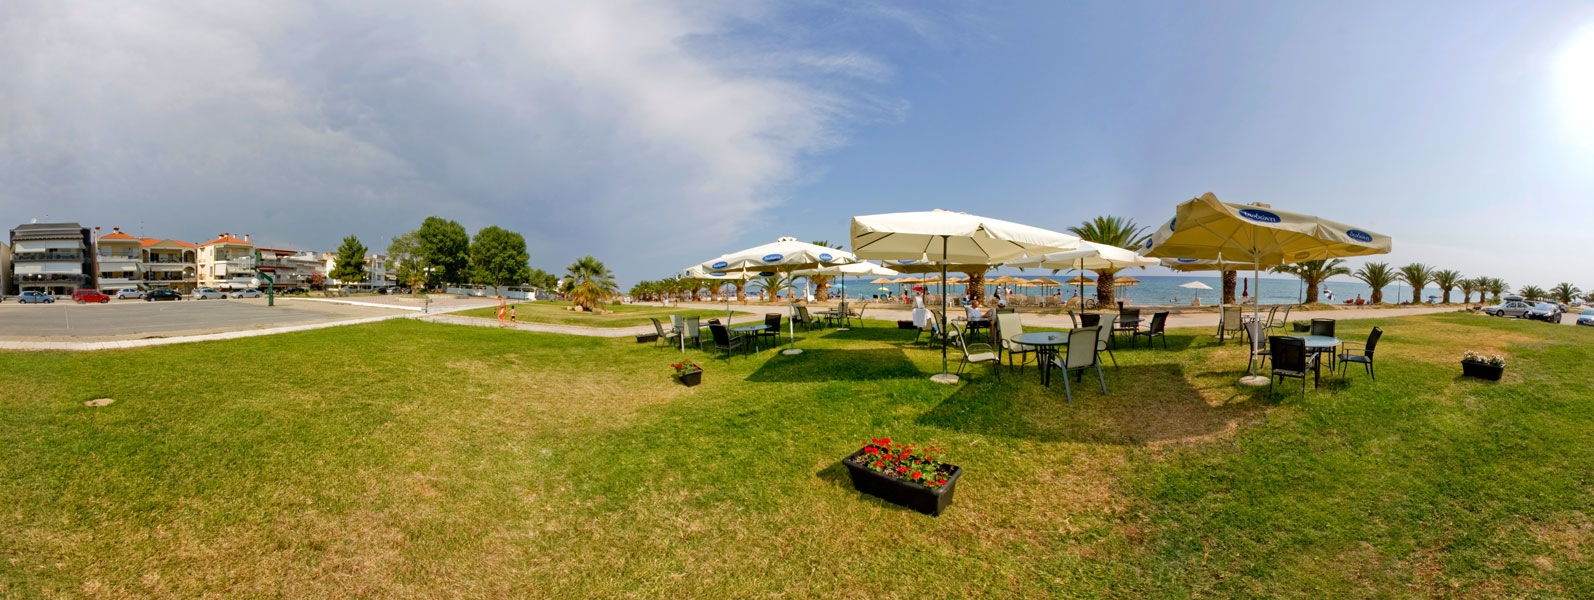 Nea Plagia, Chalkidiki, hotels, rooms, beach, map, accommodation